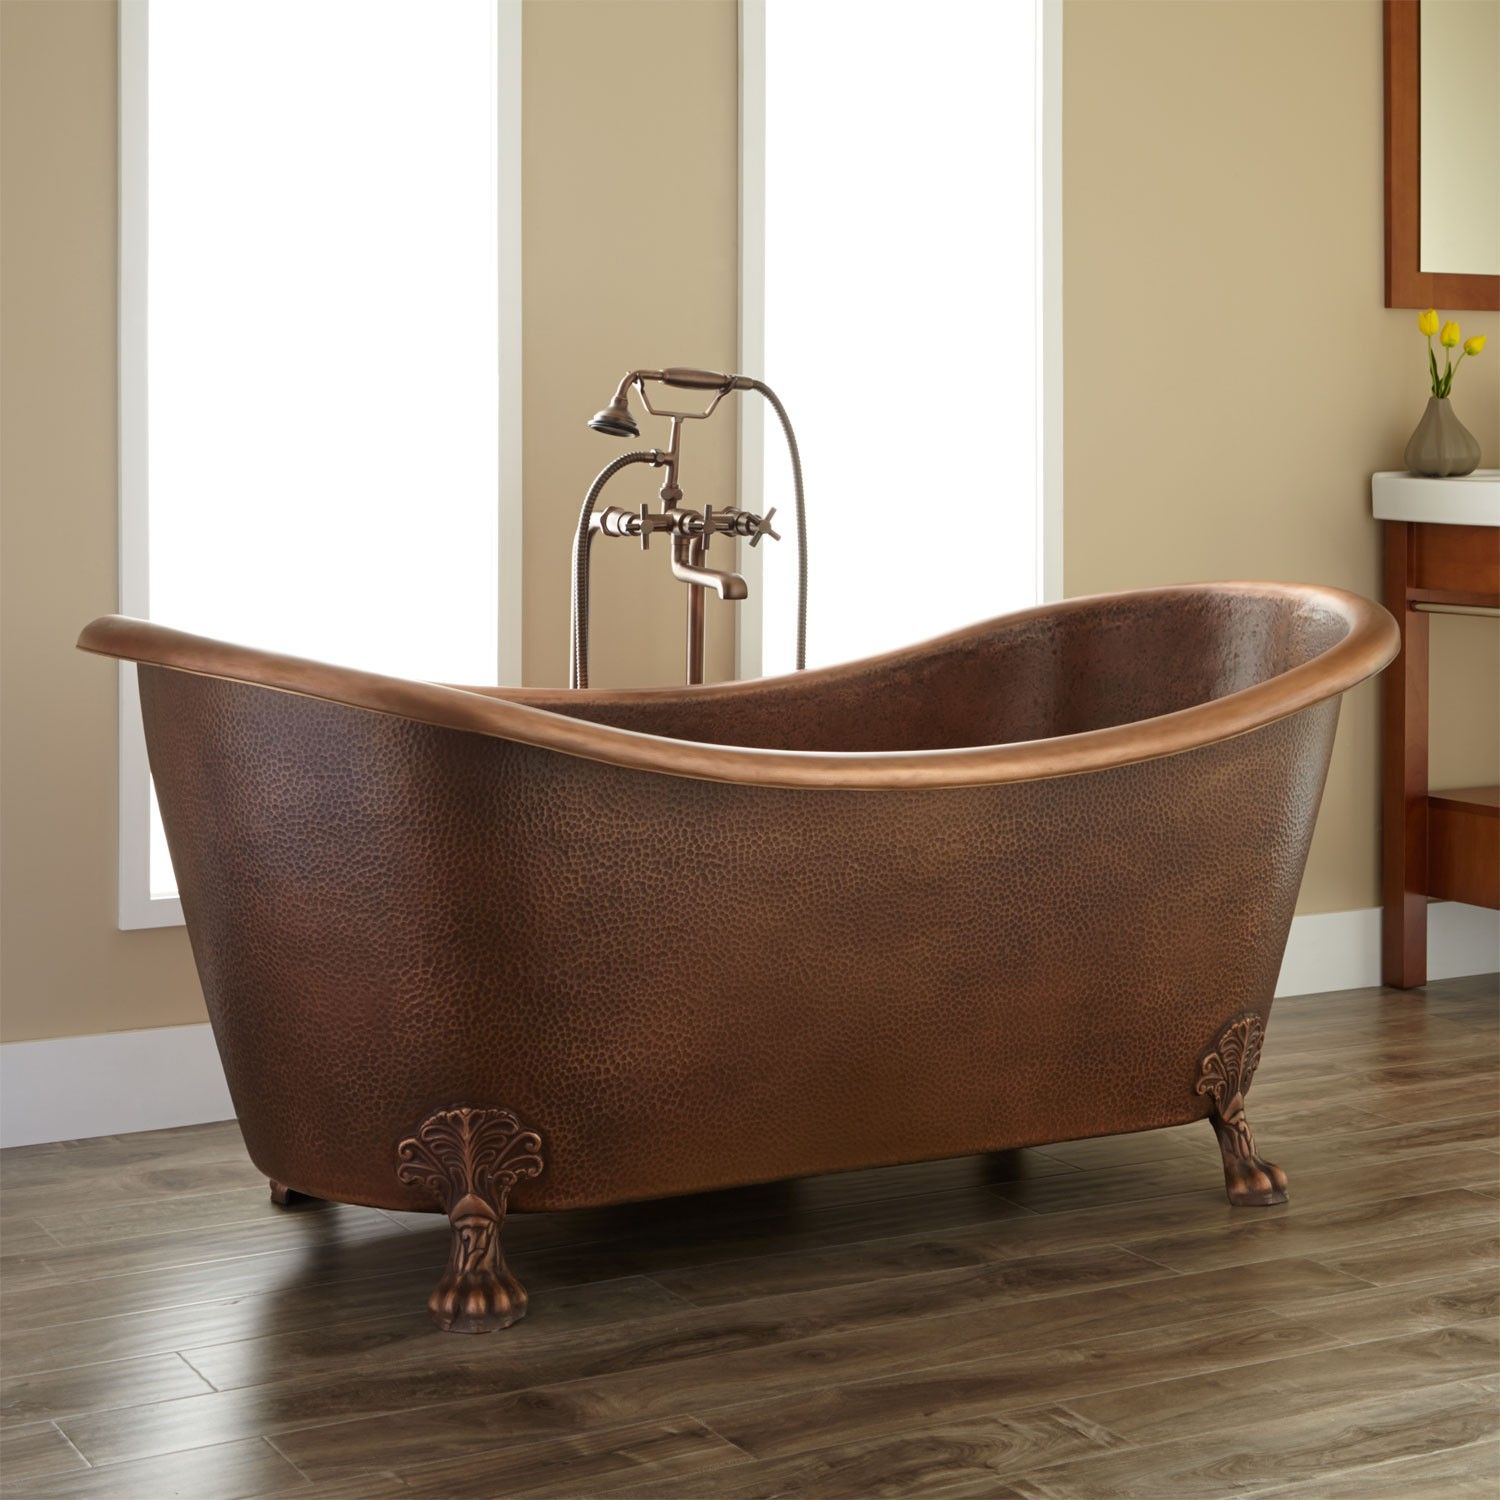 claw foot tubs bathtubs isabella hammered copper double slipper clawfoot tub. Black Bedroom Furniture Sets. Home Design Ideas